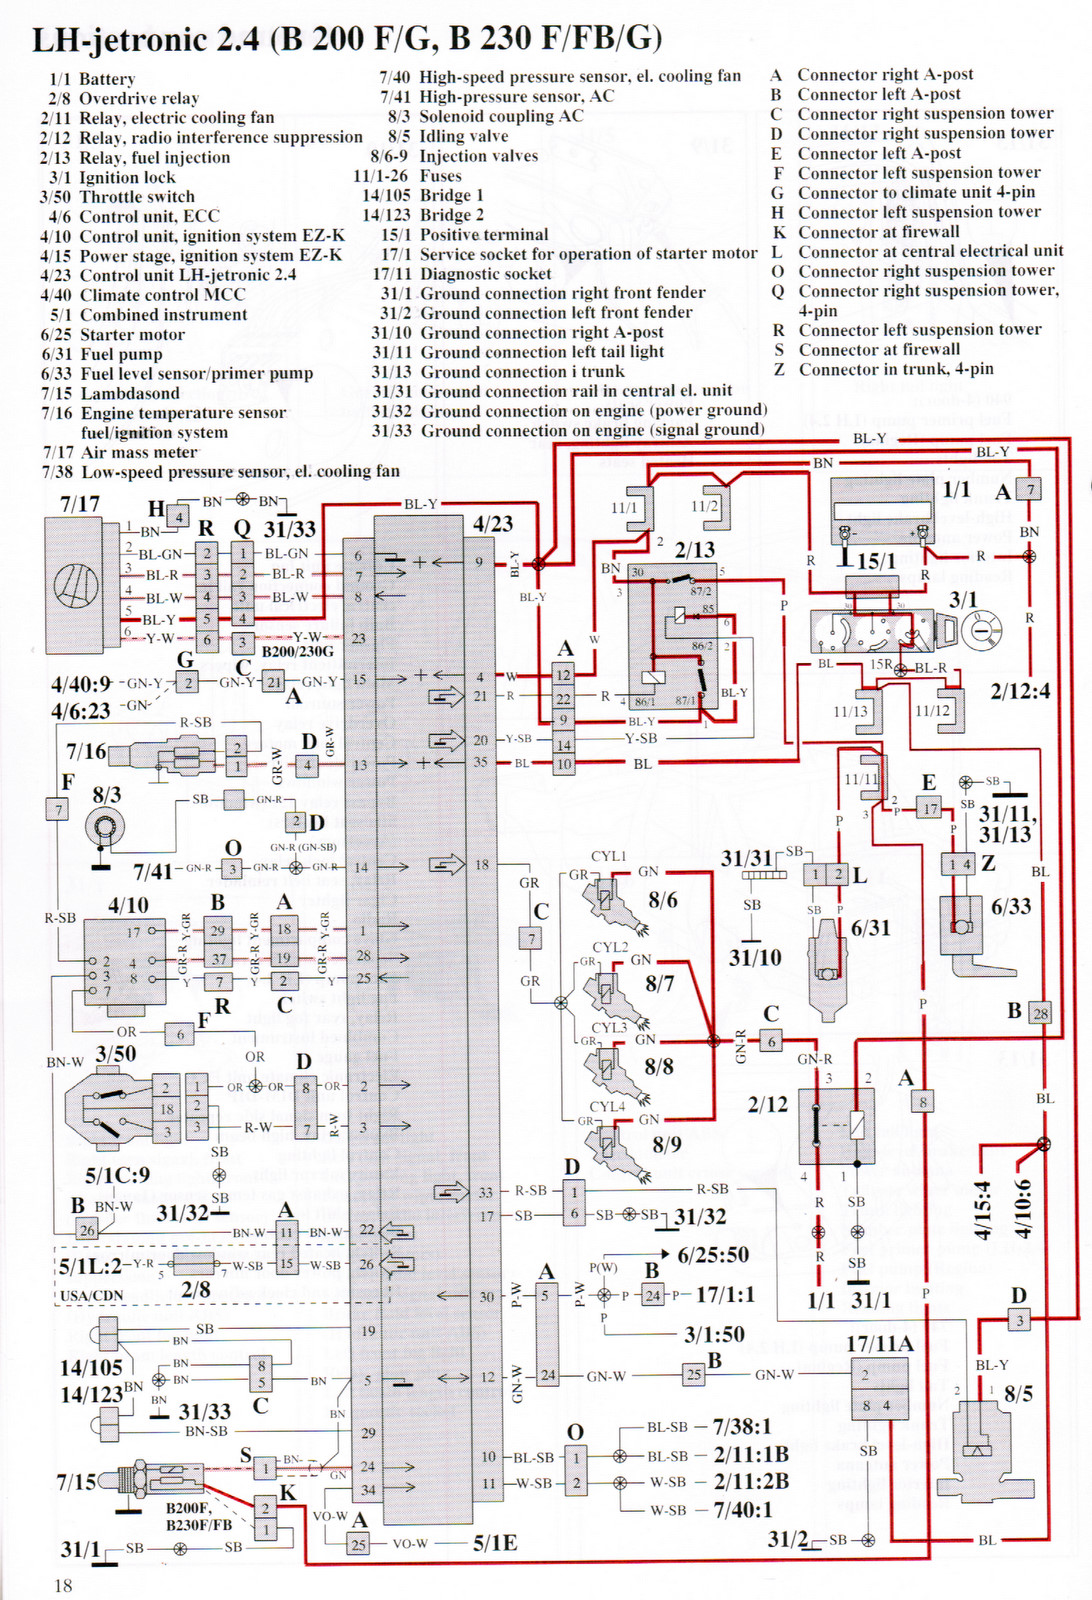 Volvo Truck Fuse Box Diagram Volvo Fe Fuse Box Wiring Diagrams Schematics likewise Volvo V Wiring Diagram  ponent Identification additionally Volvo Wiring Diagrams At Diagram With besides B also Mercury Cougar Th Generation Fuse Box Instrument Panel. on 1991 volvo 940 wiring diagram